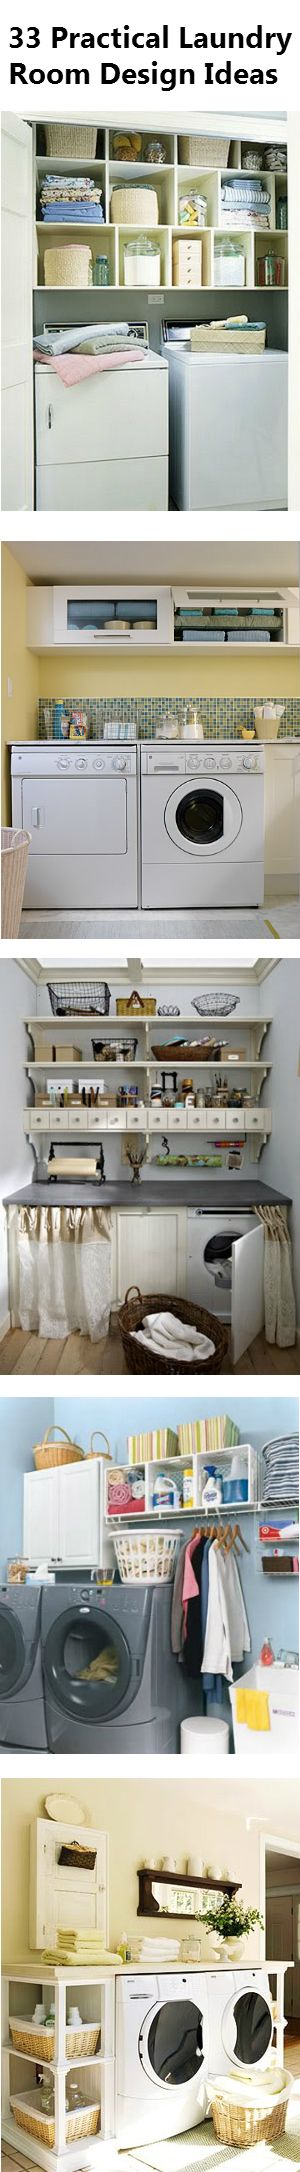 33 Really Practical Laundry Room Design Ideas